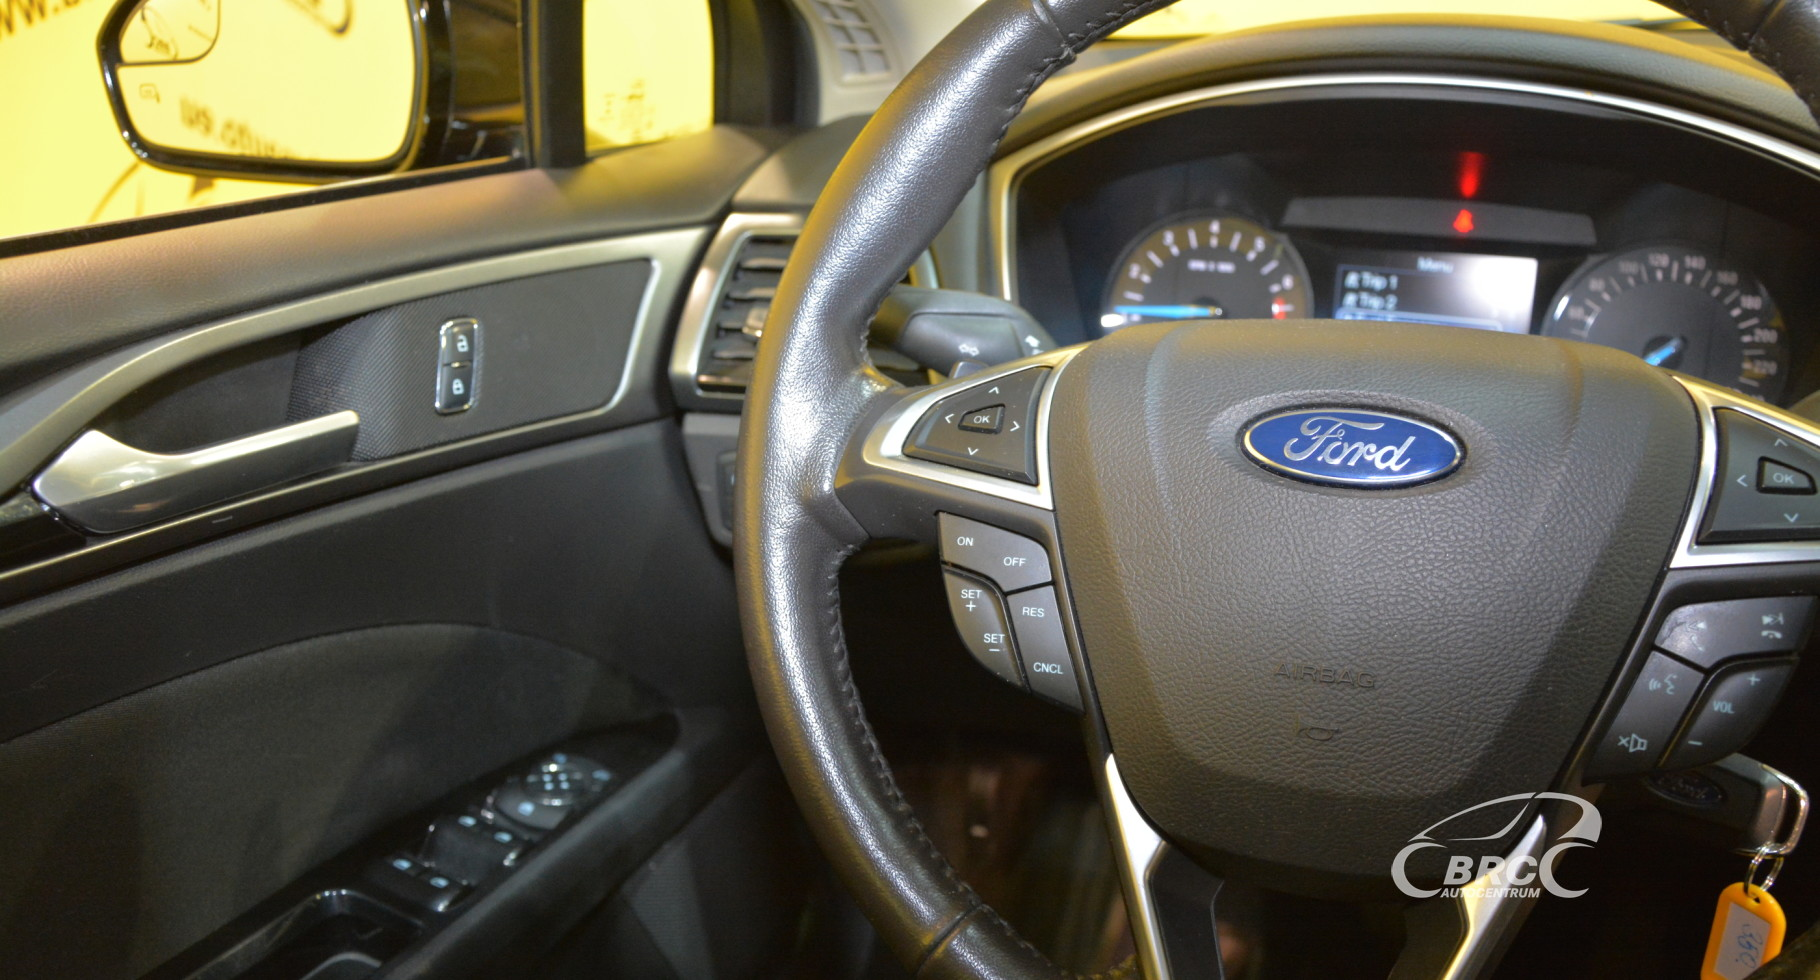 Ford Fusion 2.0 EcoBoost Automatas